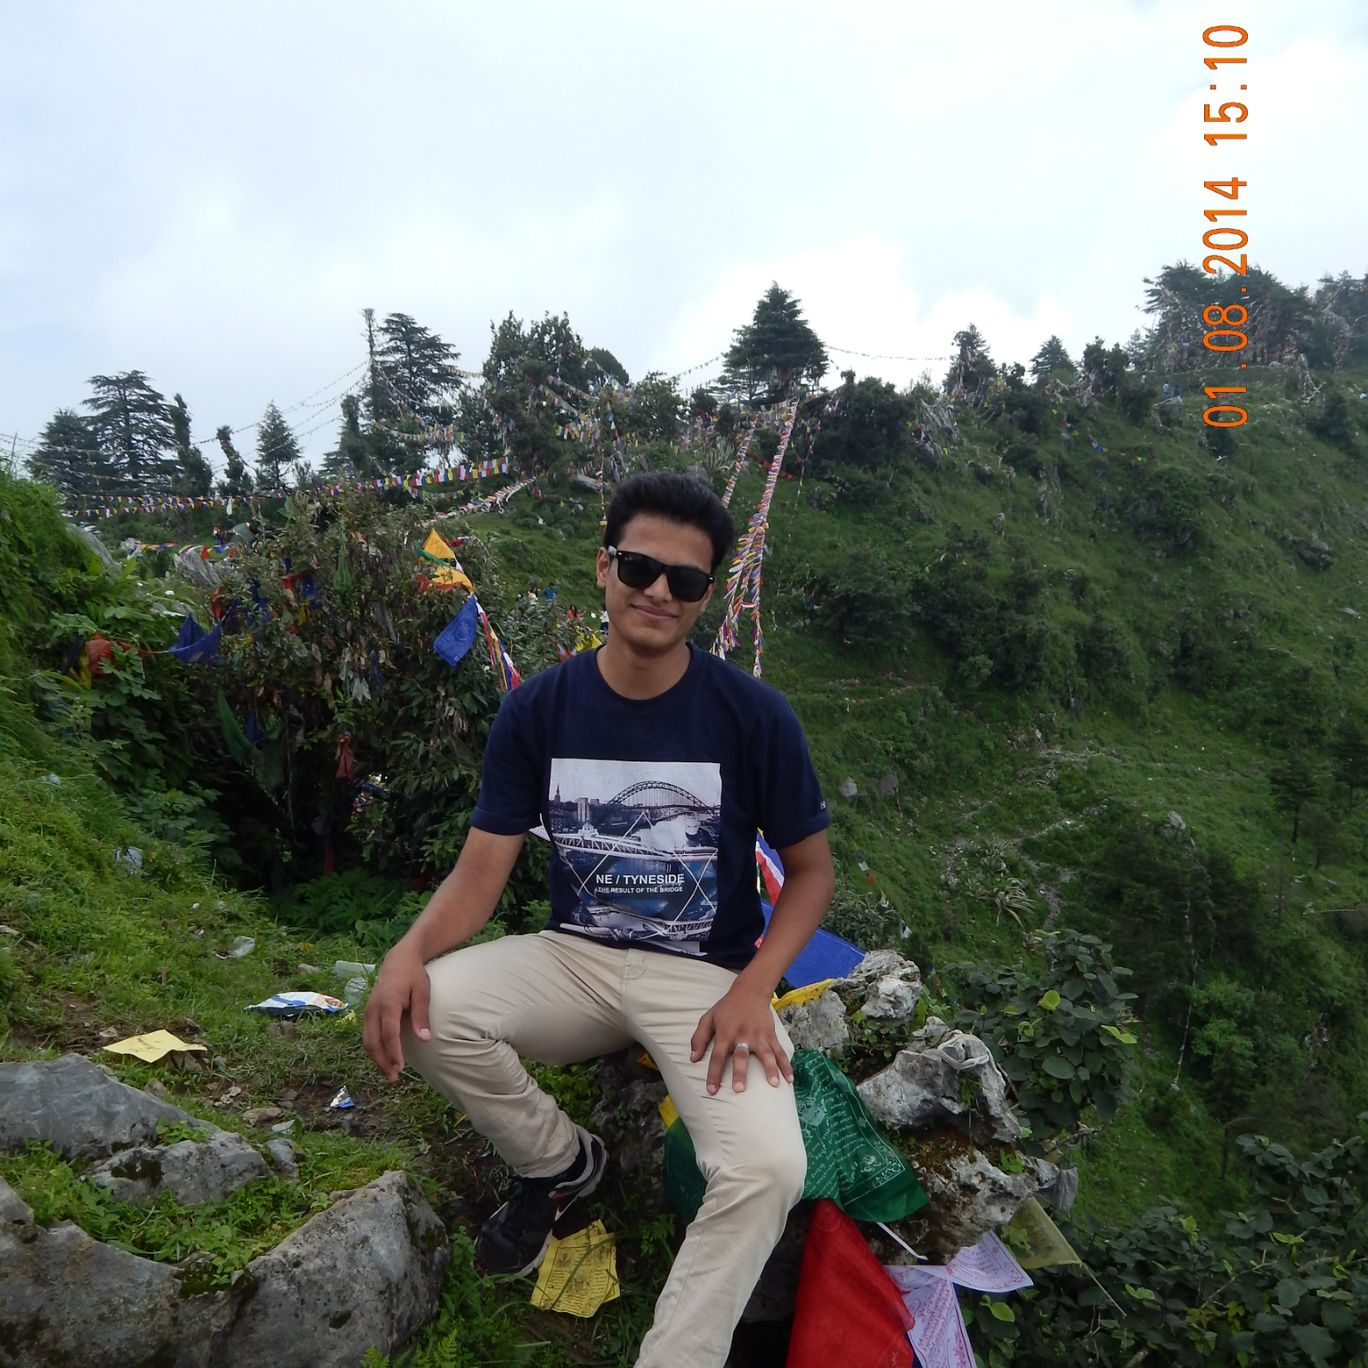 Photo of Camp George Everest - Camping in Mussoorie By Himansh Karki